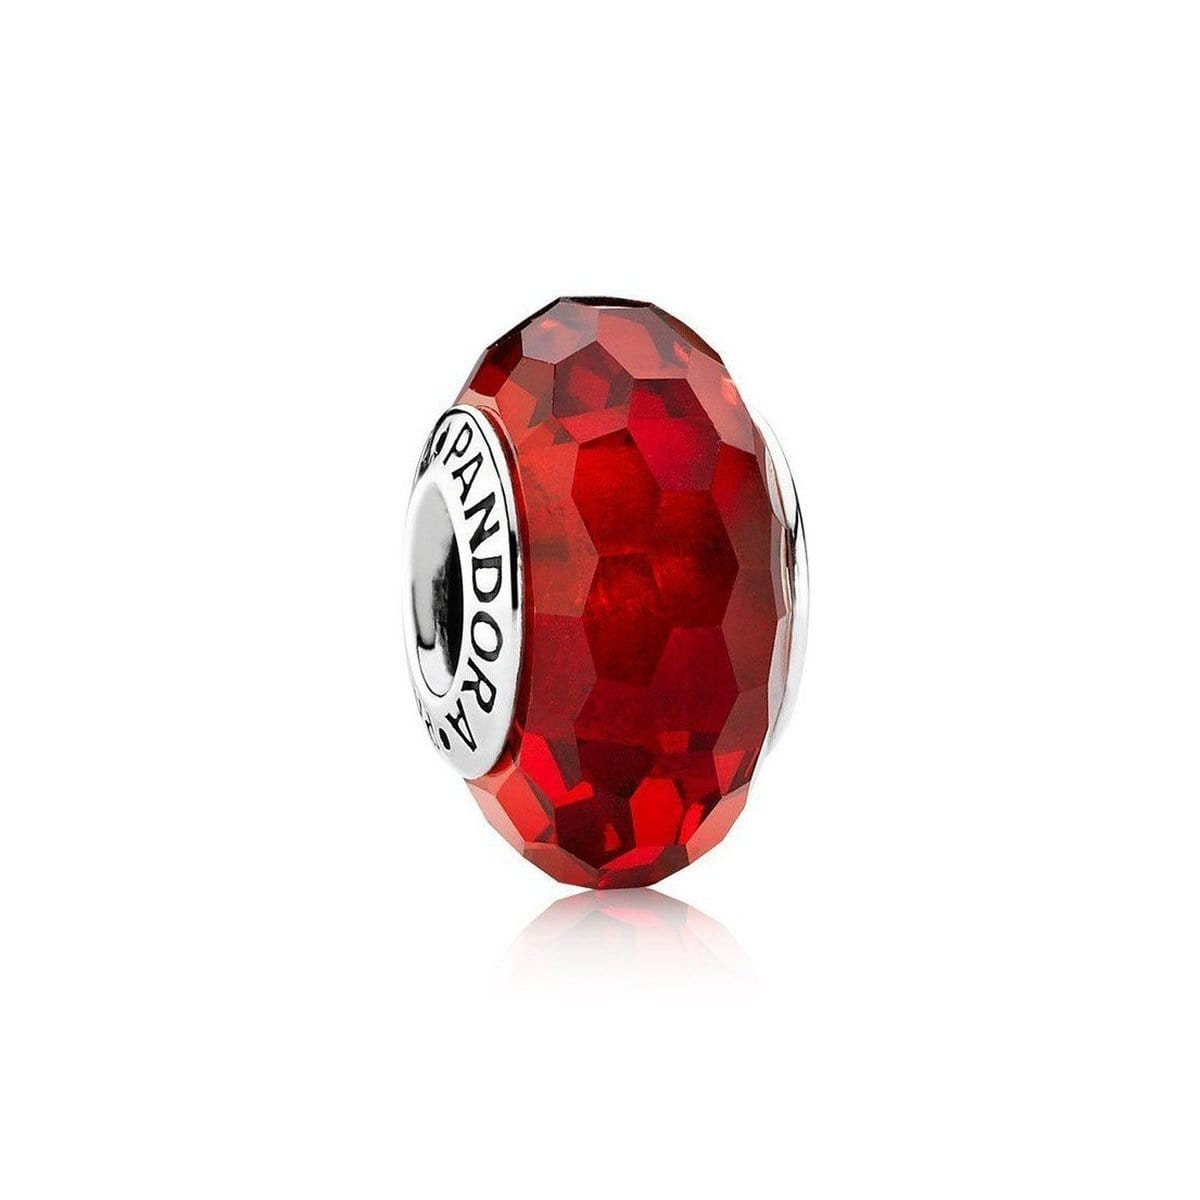 Red Fascinating Murano Glass Charm - 791066-Pandora-Renee Taylor Gallery